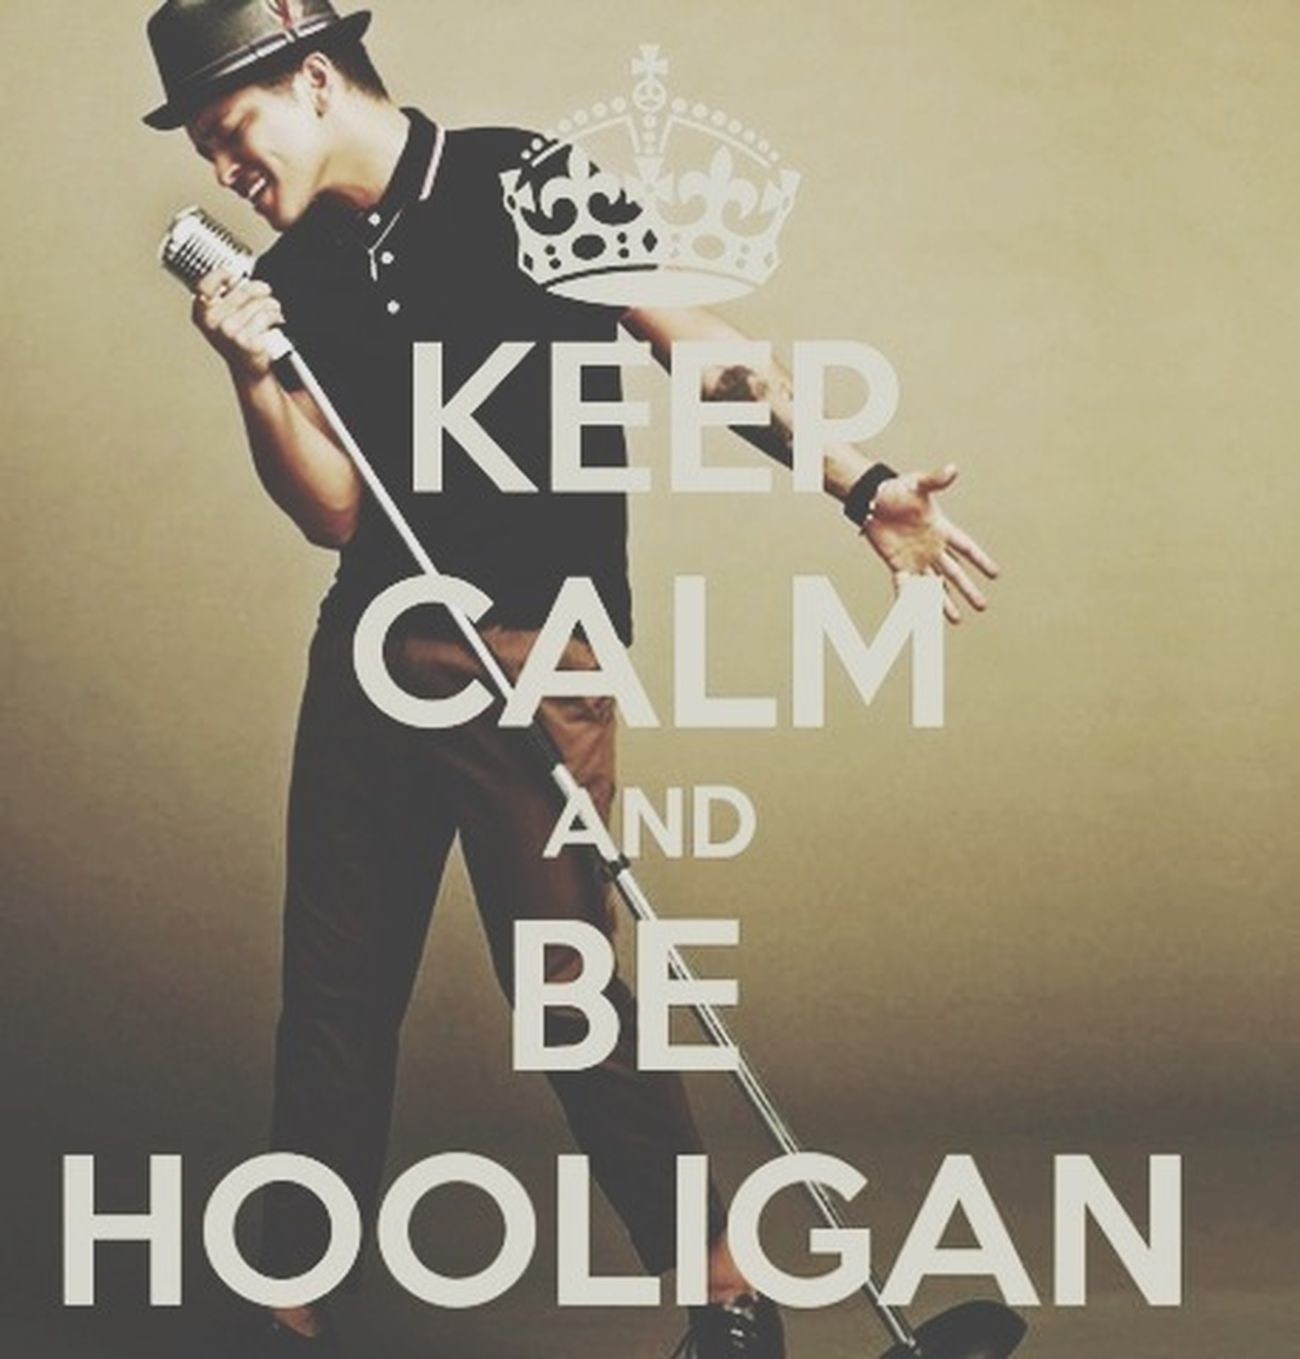 I'm A Hooligan ! Bruno mars fans ! Bruno Mars The Best Singer In The Hole World I LOVE HIM♥